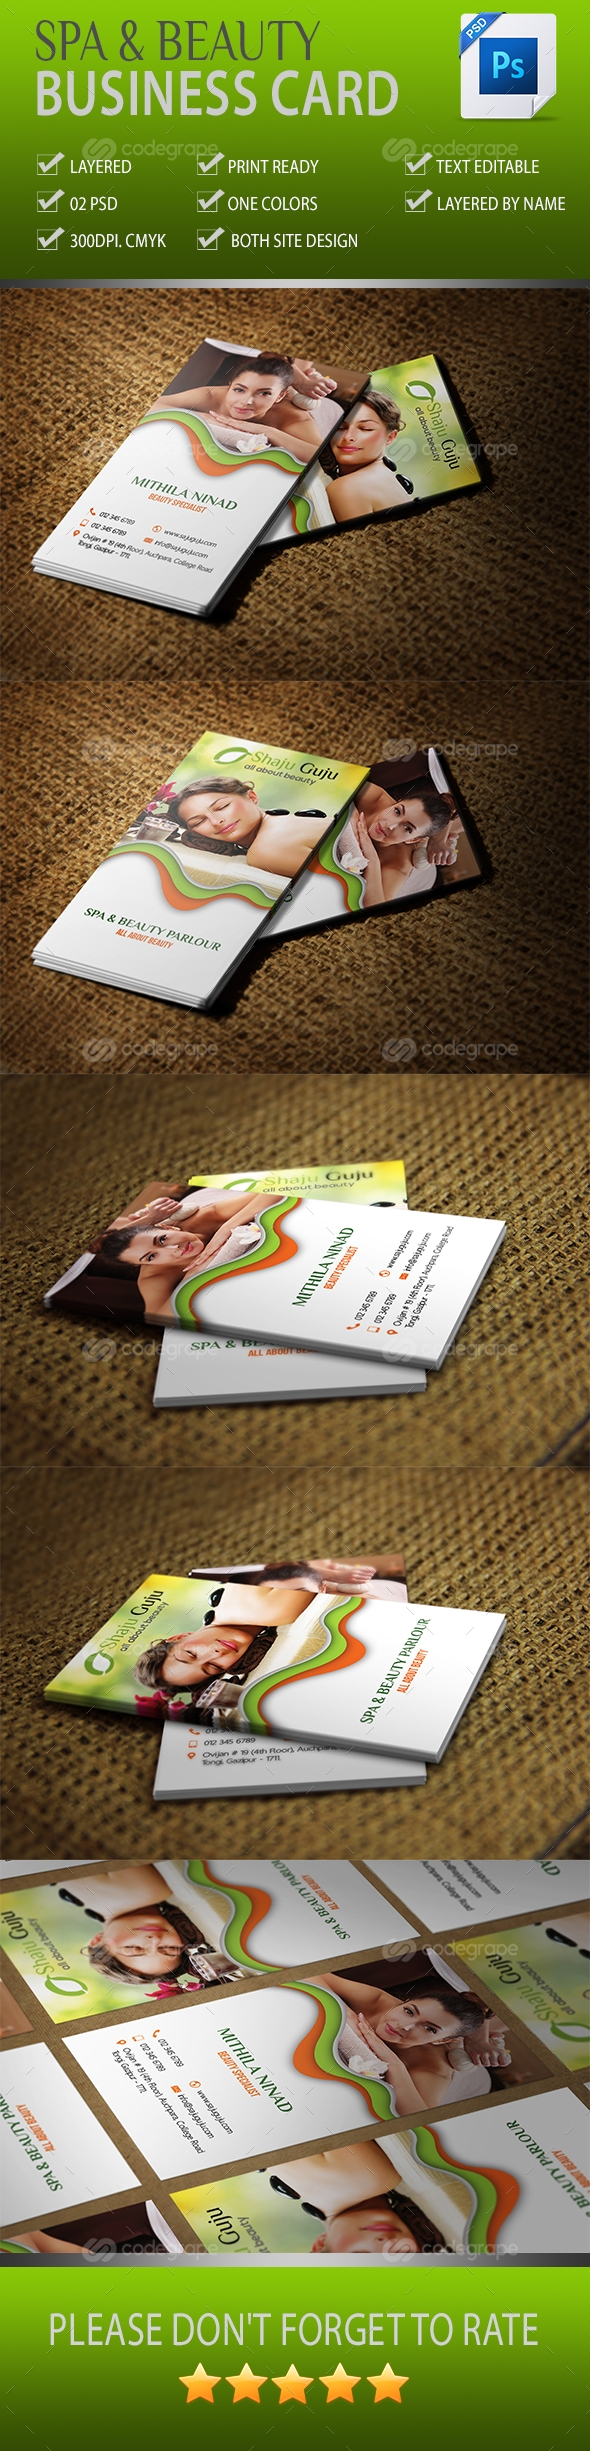 Spa And Beauty Business Card Vol-02